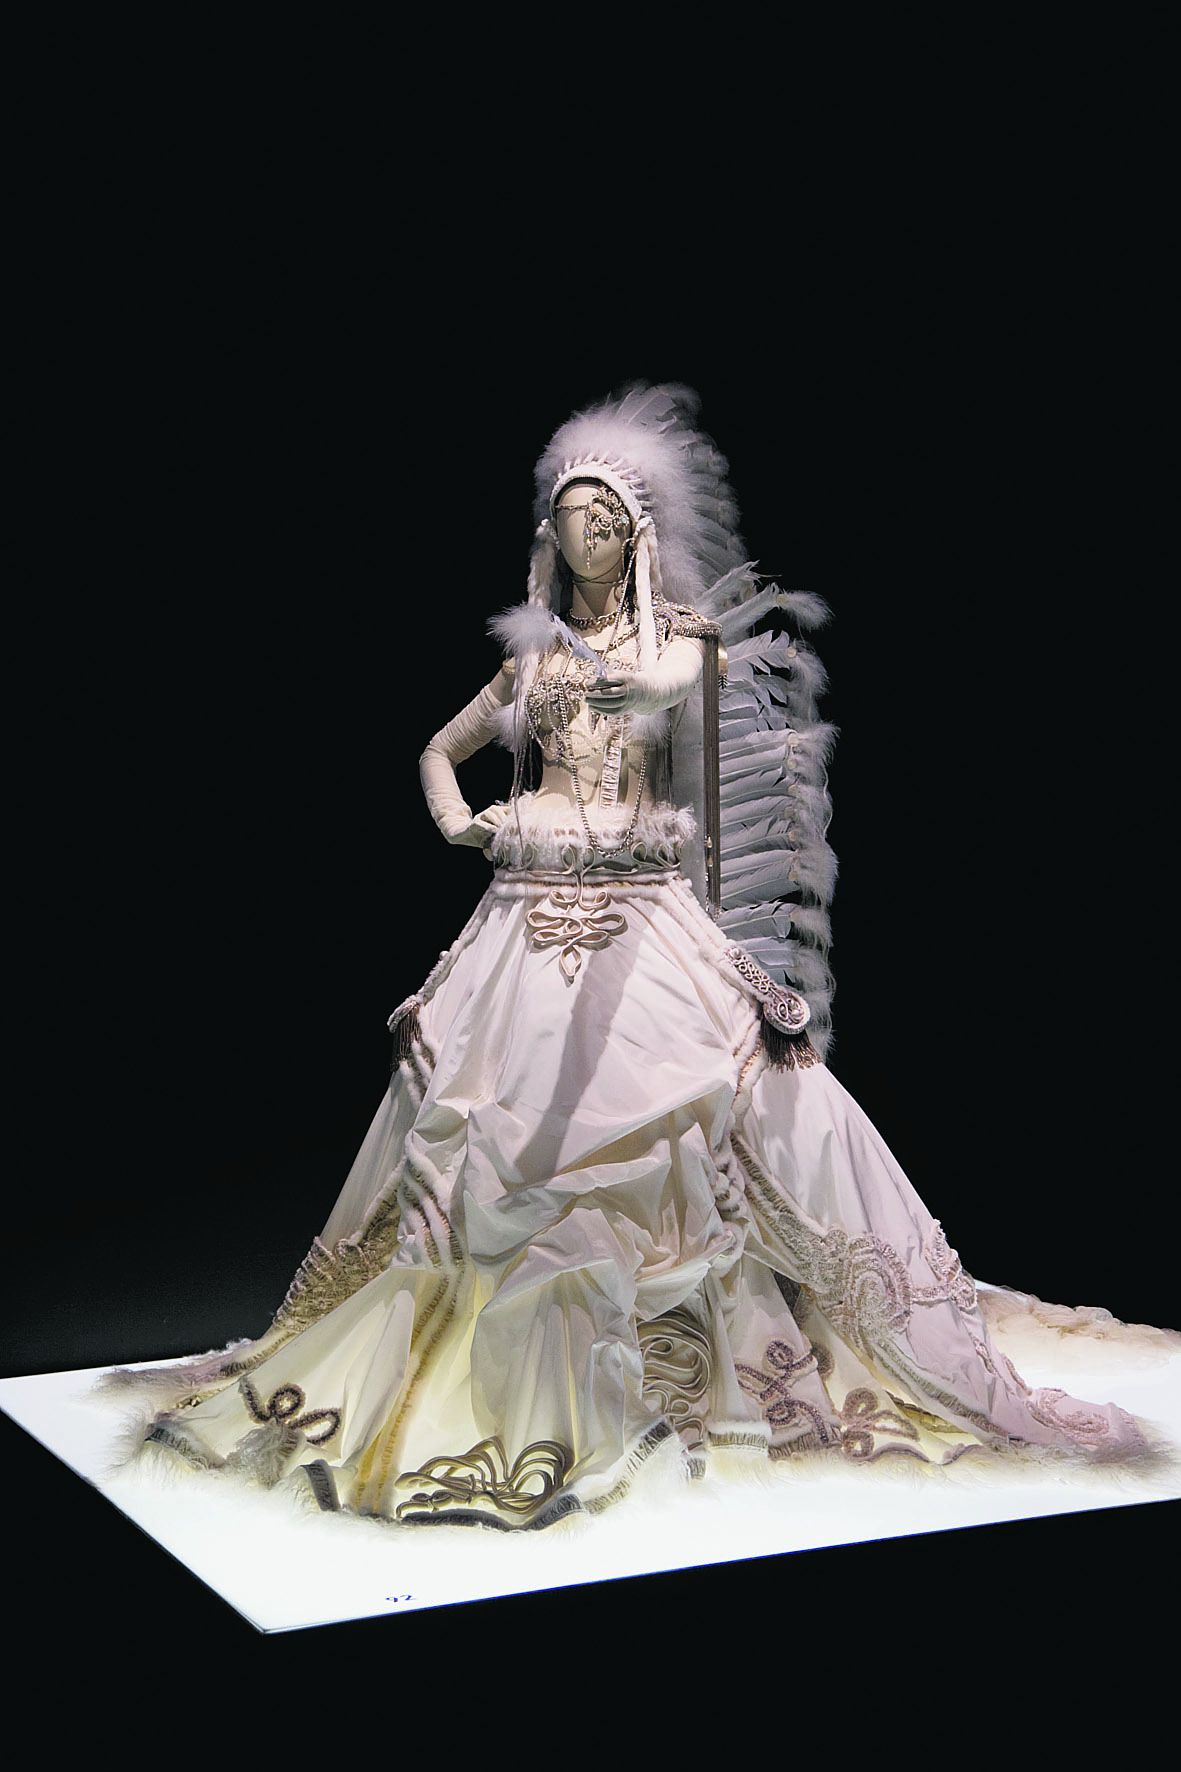 """A wedding dress by French fashion designer Jean Paul Gaultier is displayed at the opening of his exhibit """"The Fashion World of Jean Paul Gaultier"""", from the sidewalk to the catwalk, at Kunsthal museum in Rotterdam, Netherlands, Friday Feb. 8, 2013. The exhibit opens to the public on Feb. 10, 2013. (AP Photo/Peter Dejong)"""